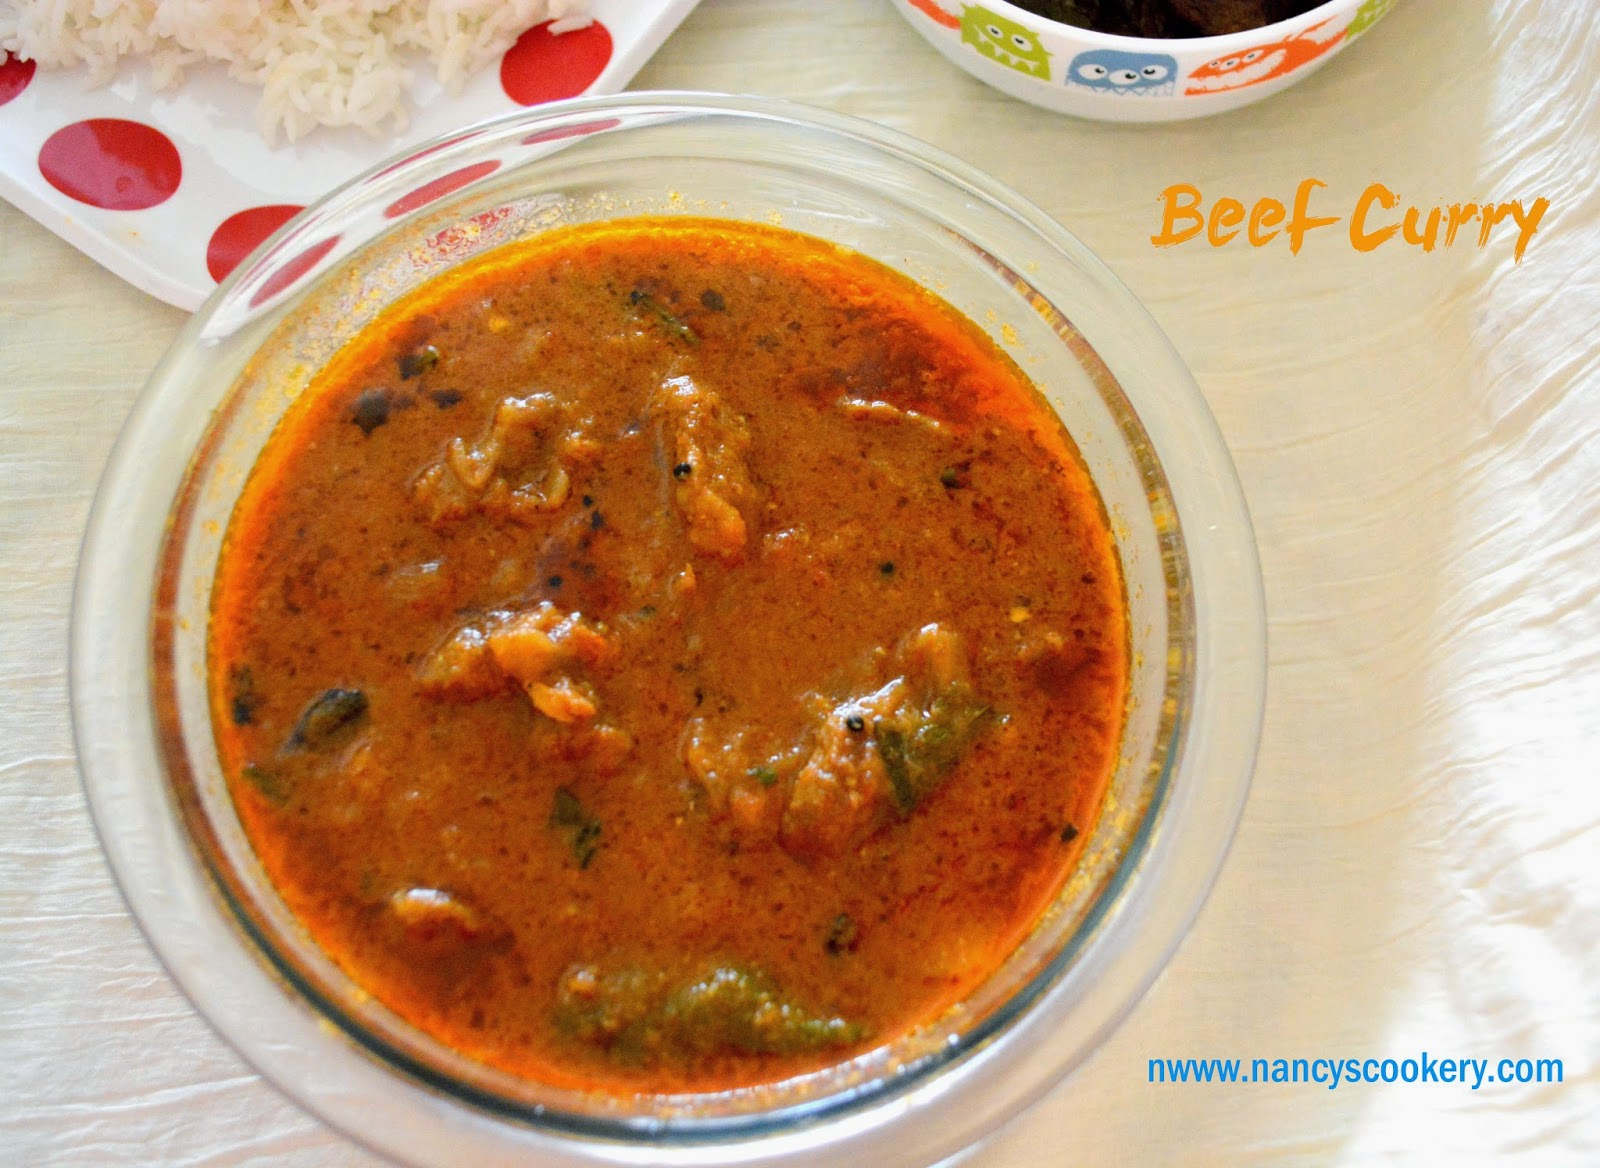 Beef Curry Is One Of The Dish We Prepare In Non Vegetarian Homes Good For Health My Gynecologist Recommended This During